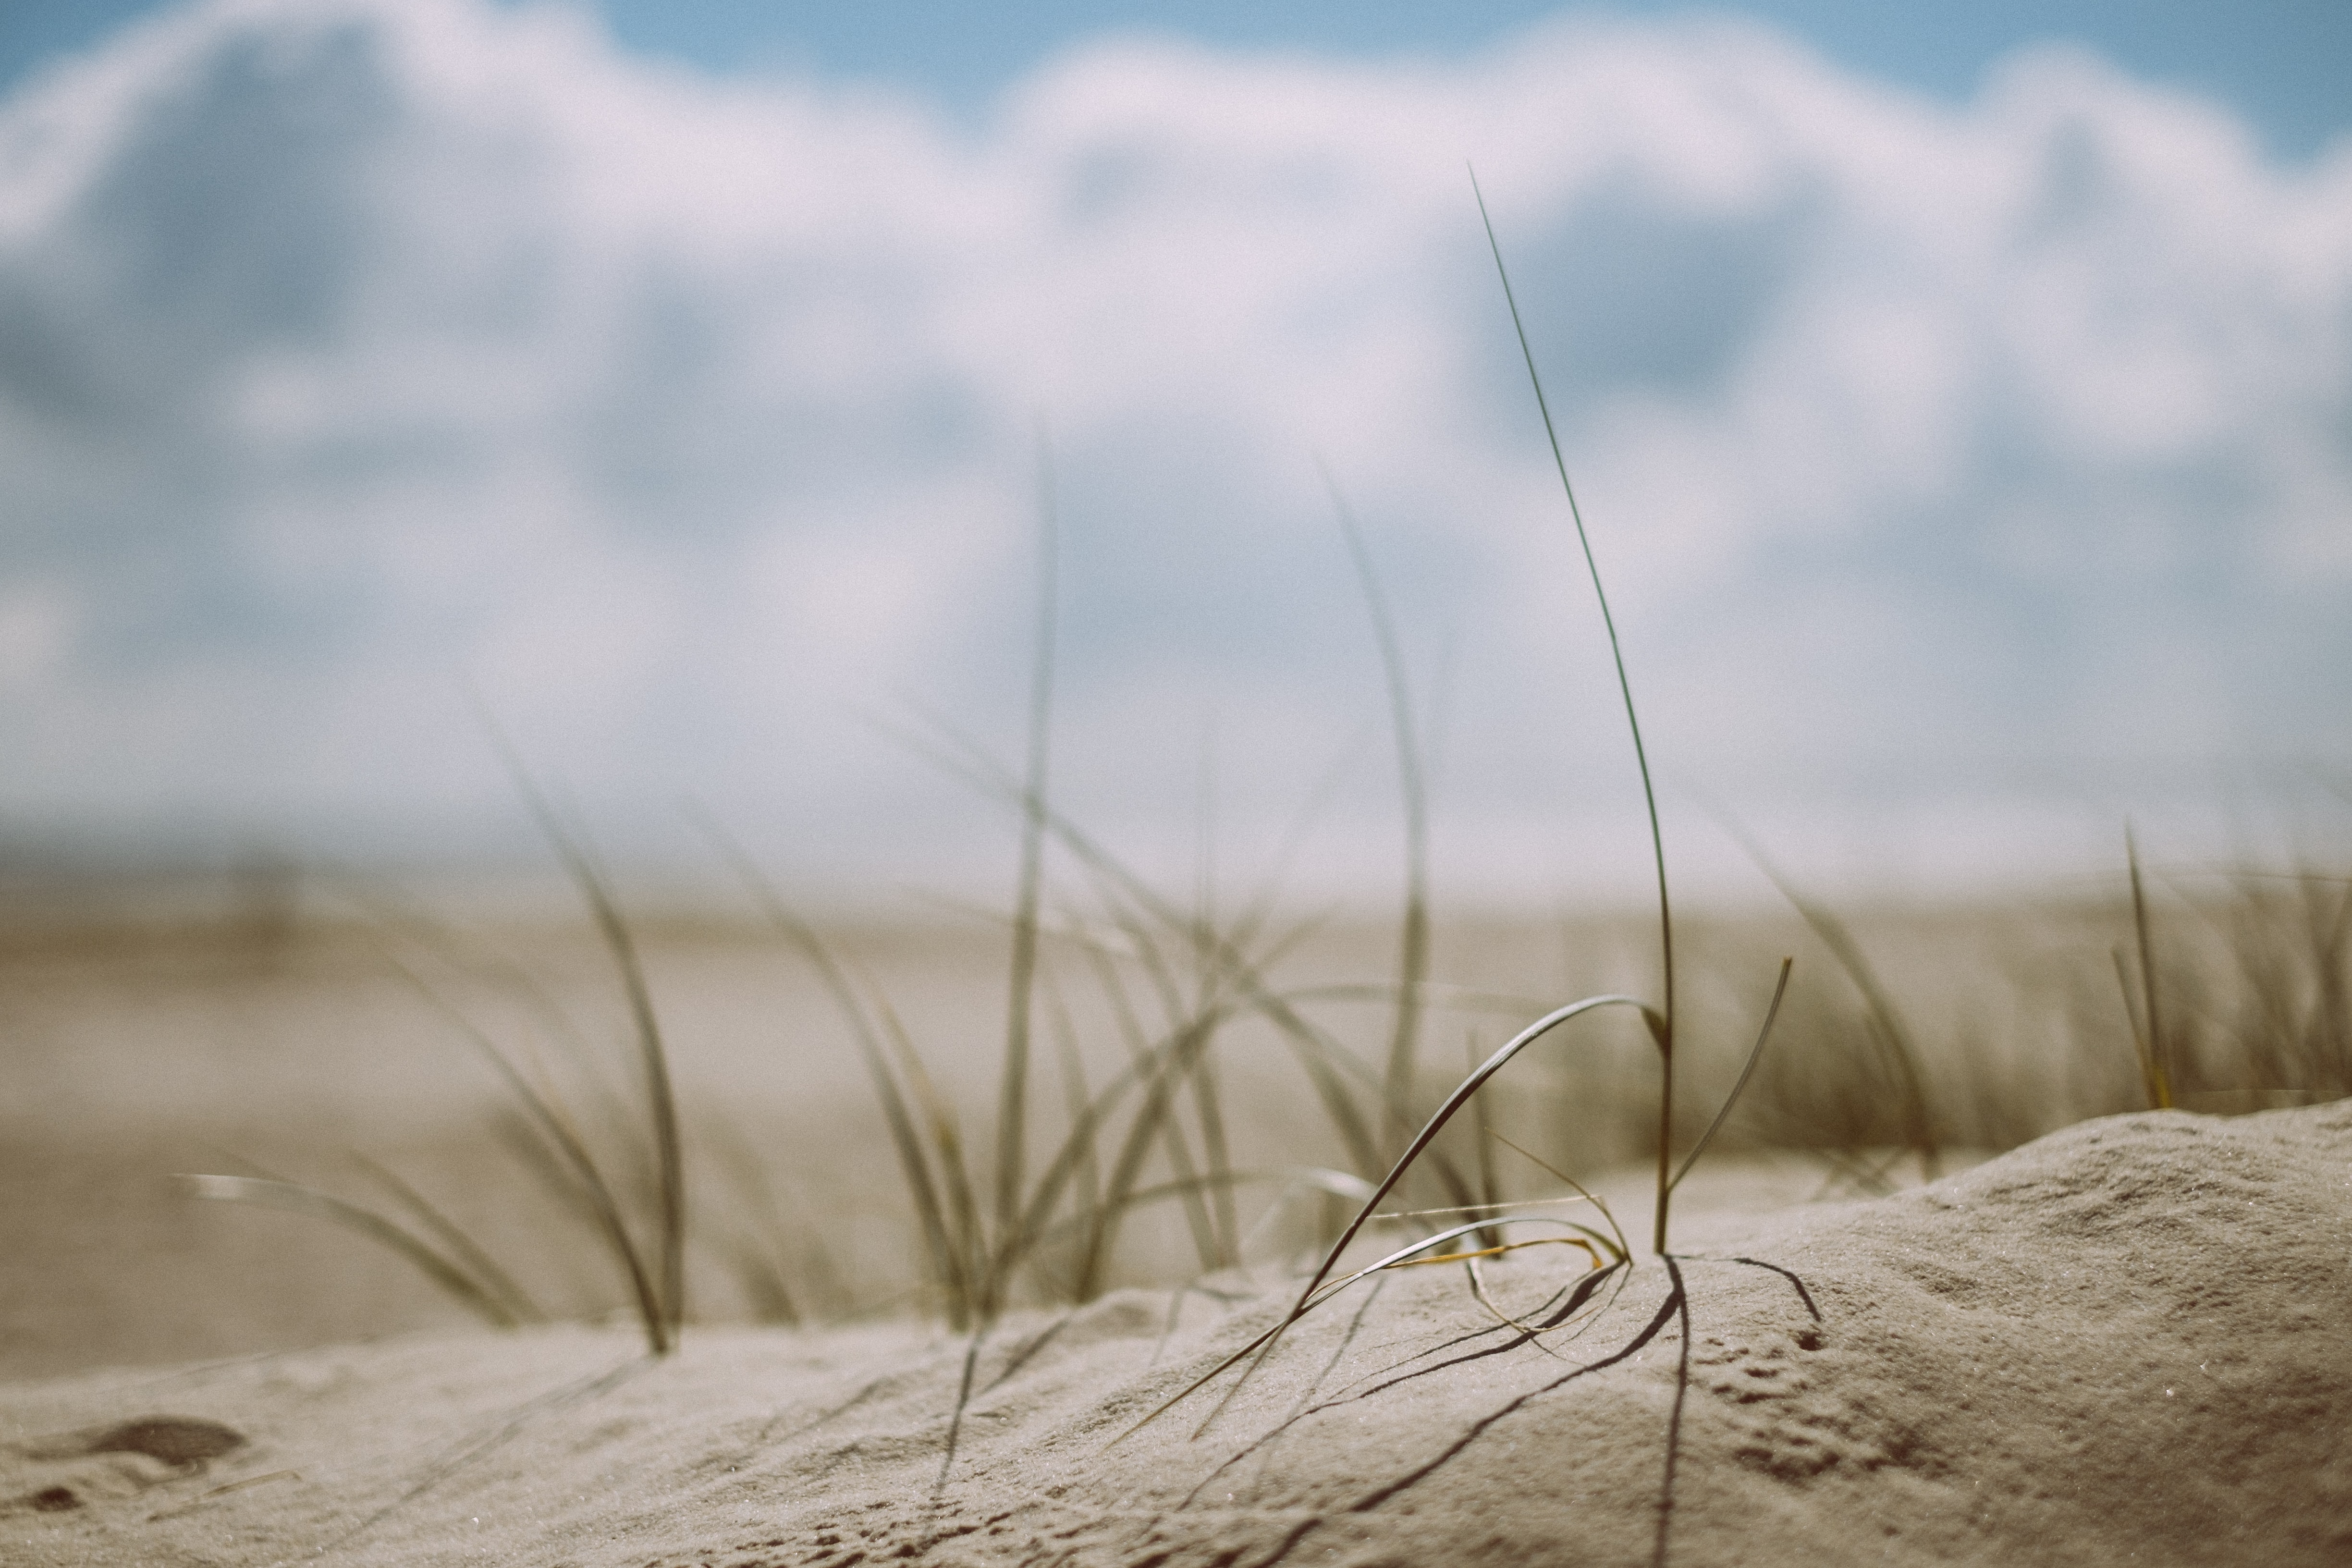 Grass on a sand dune beach in Langeoog